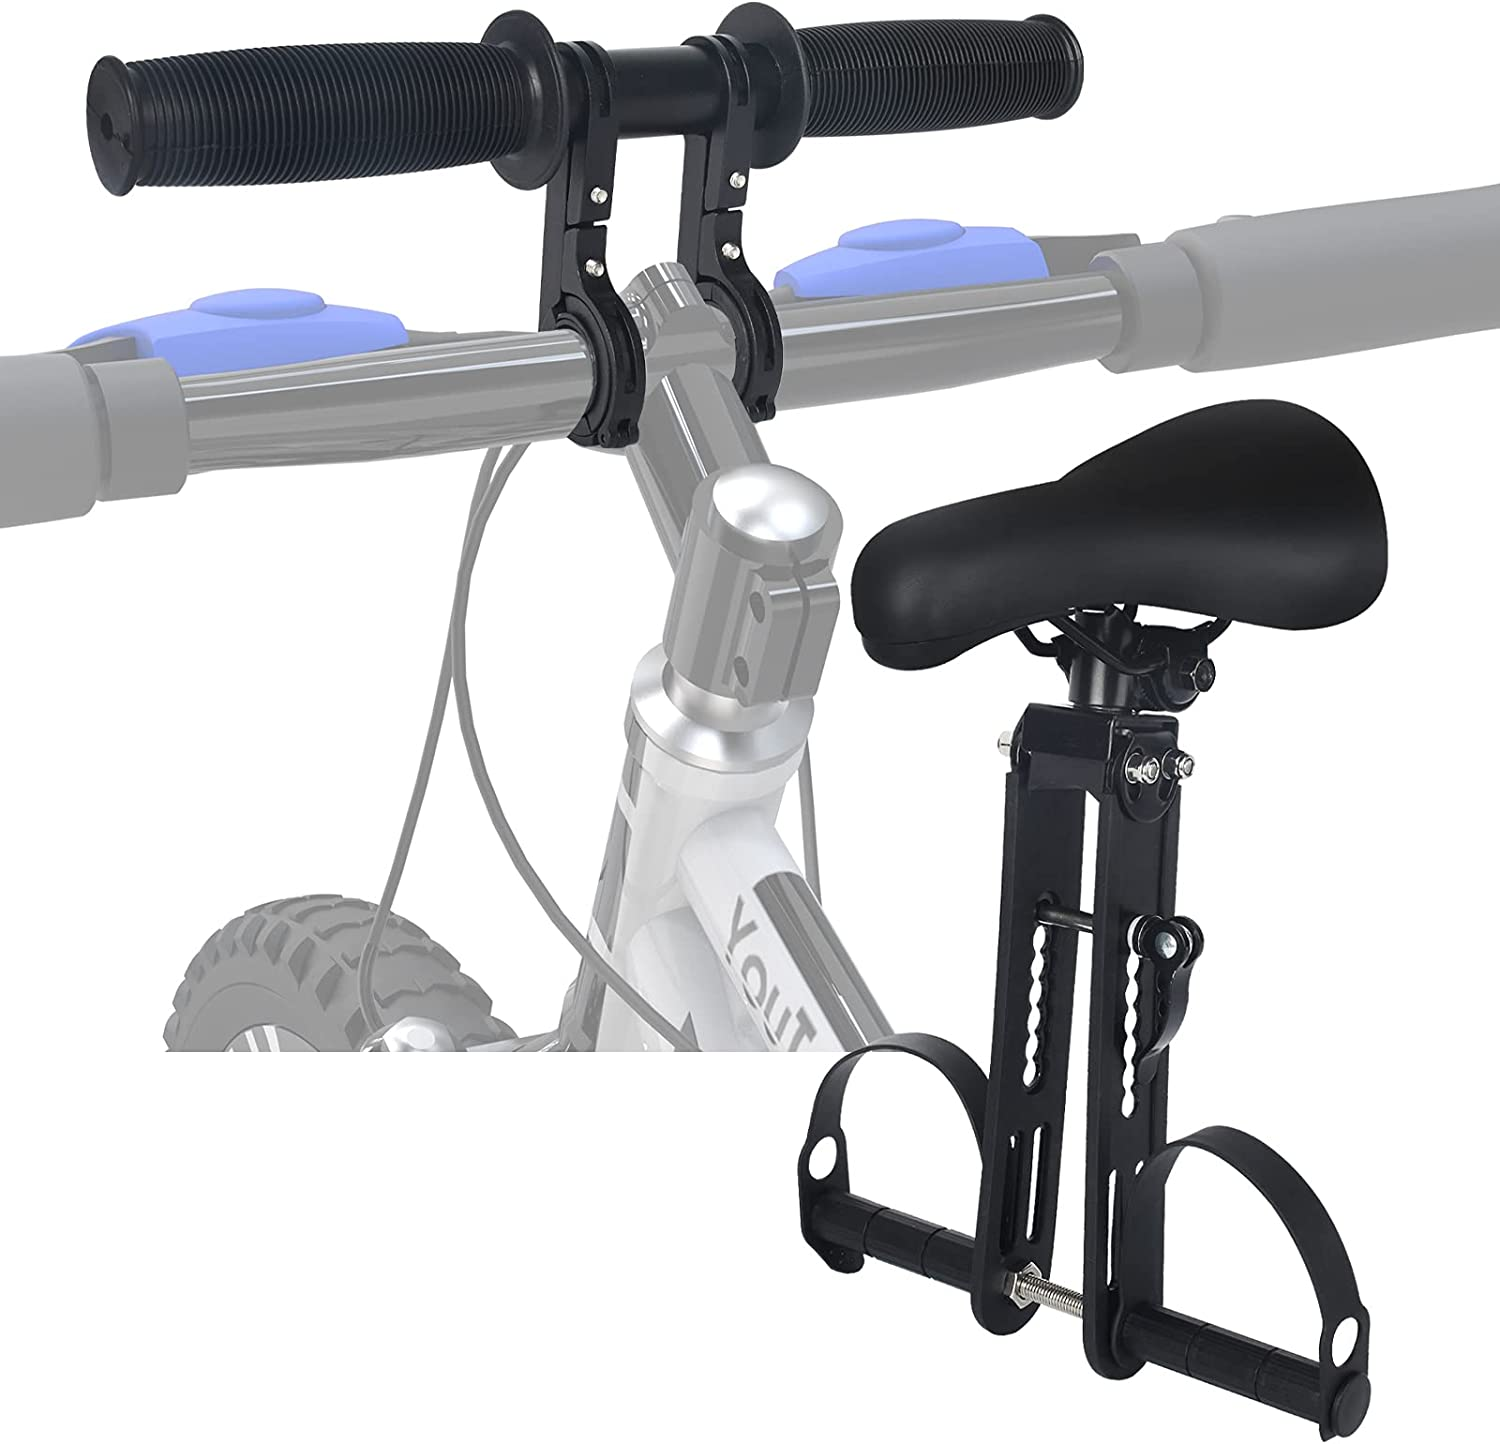 YouTeMei Bike Child Seat for Adult Bike, Front Mounted Kids Bike Seat, with Foot Pedals for Children 2~6 Years, Compatible with All Adult Mountain Bikes